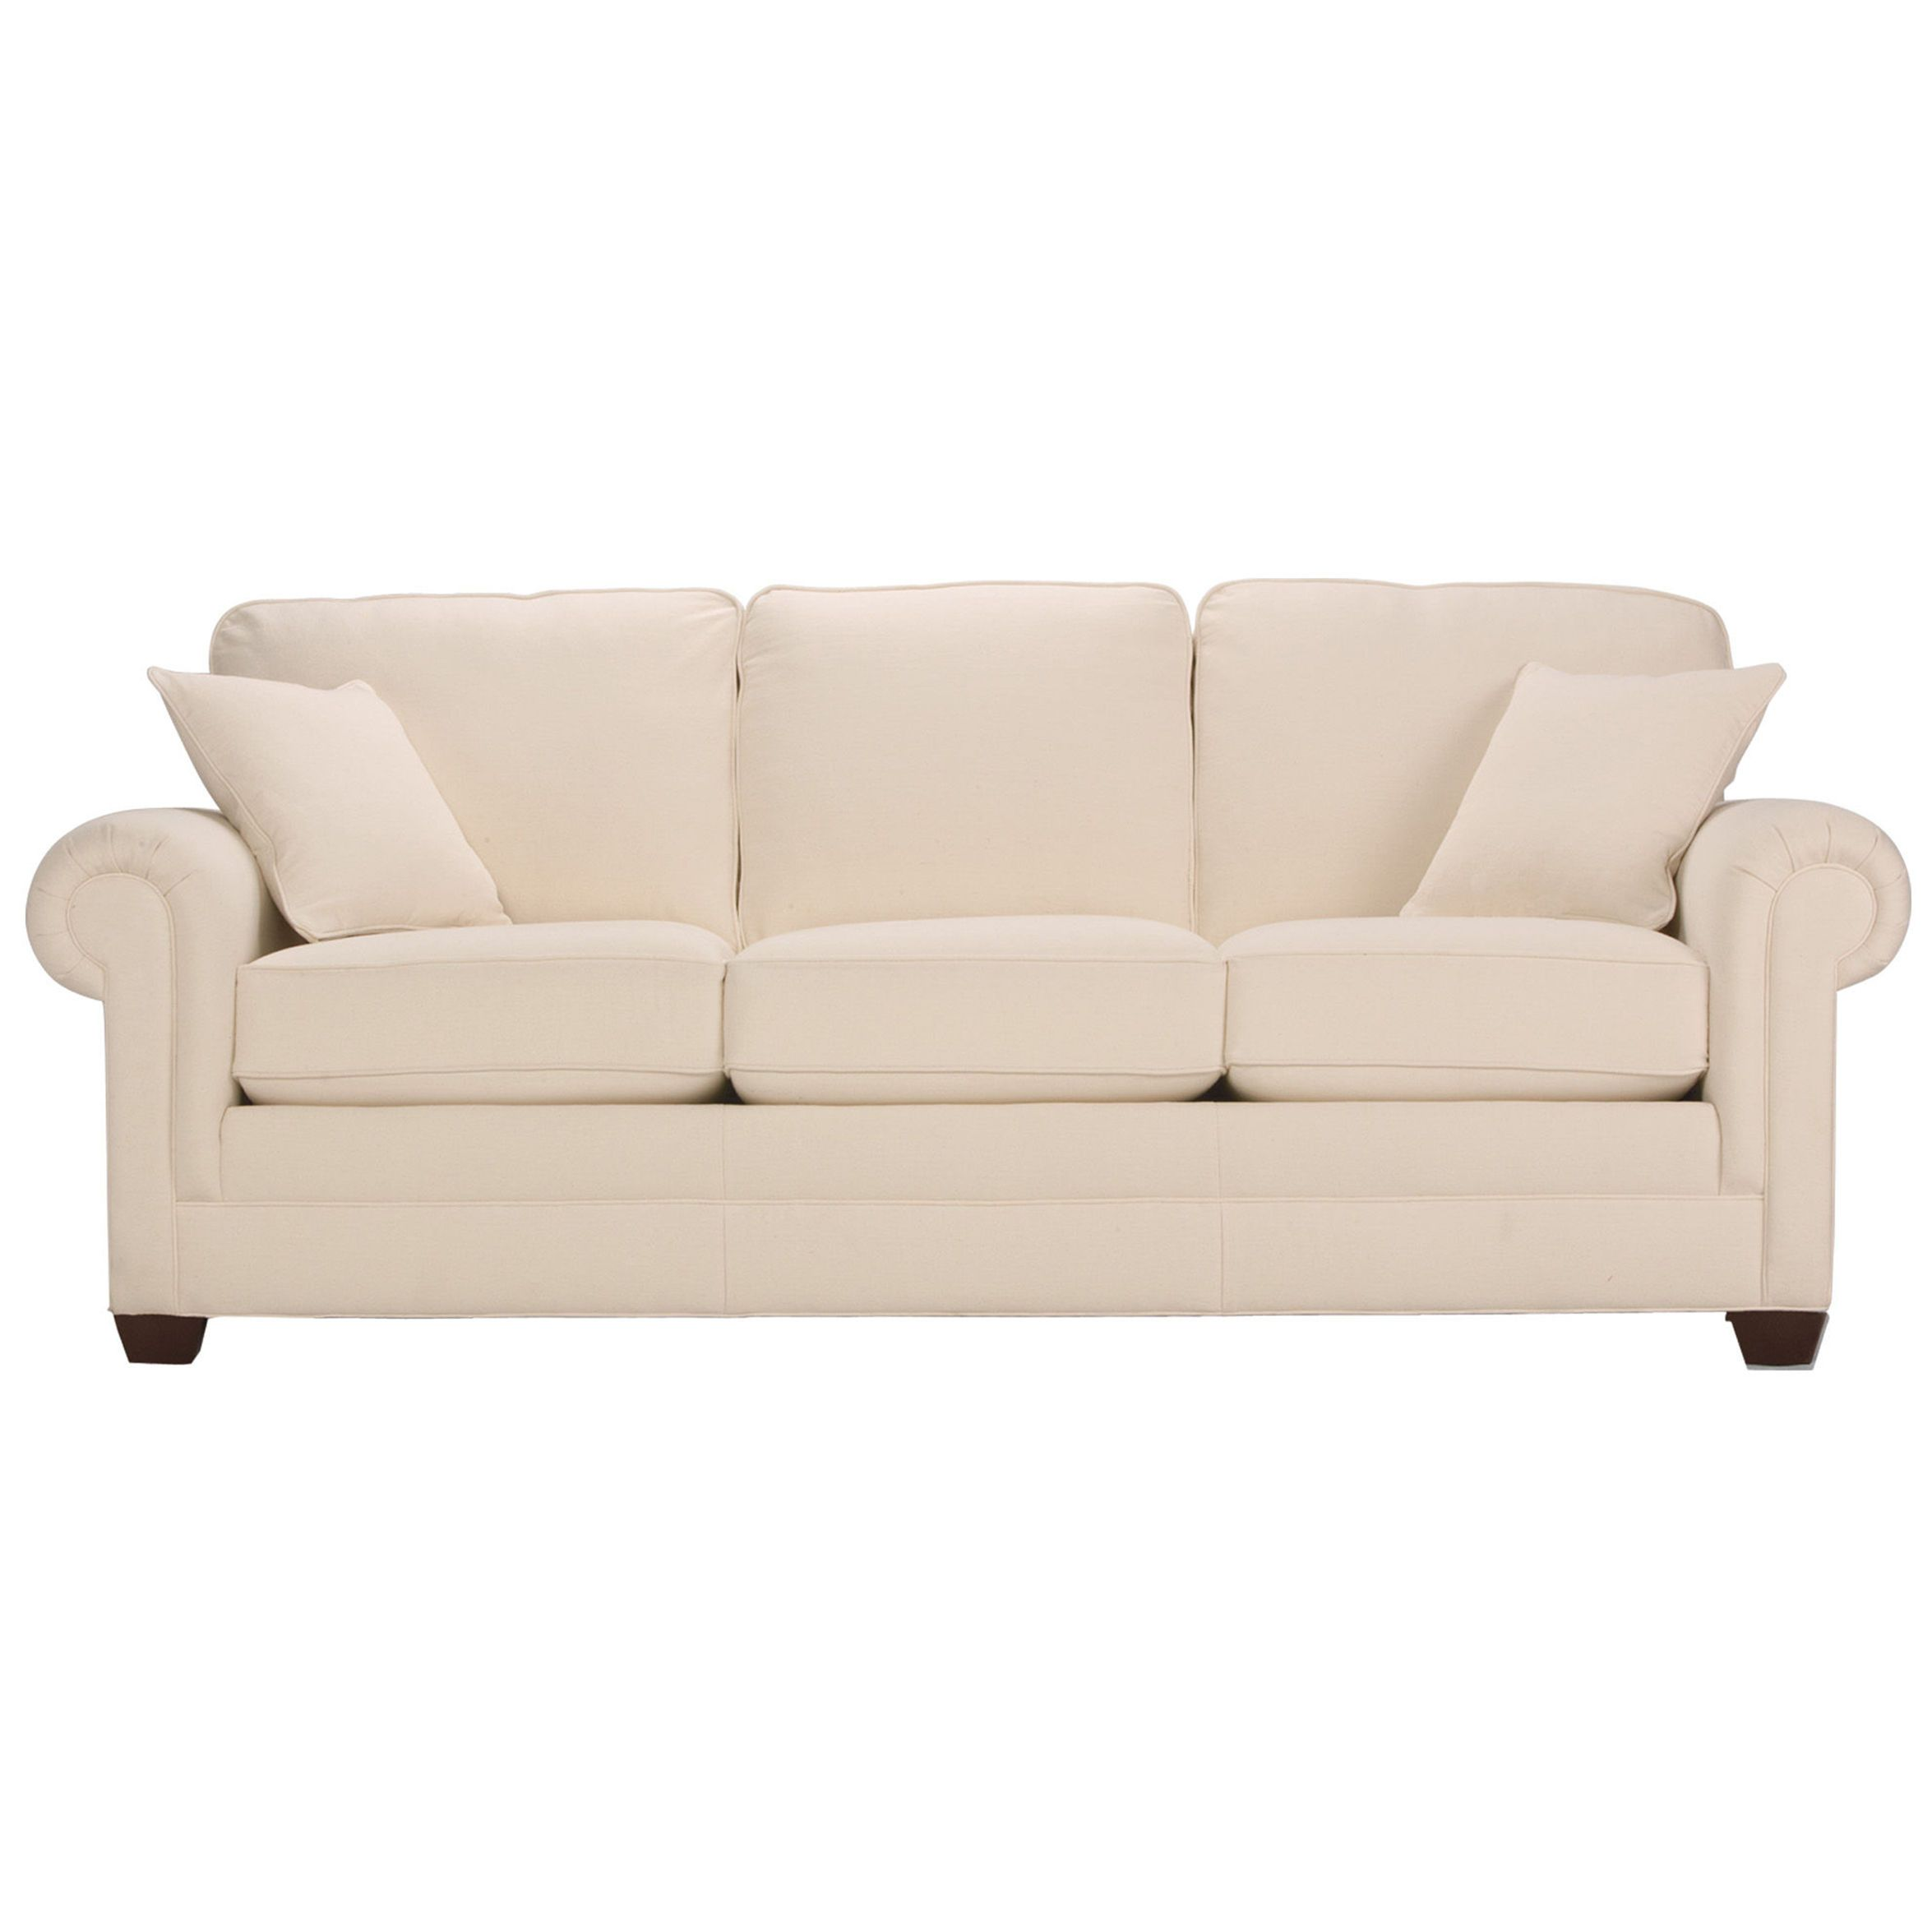 Conor Sofa Ethan Allen Us Sofa Living Room Sofa Leather Couch